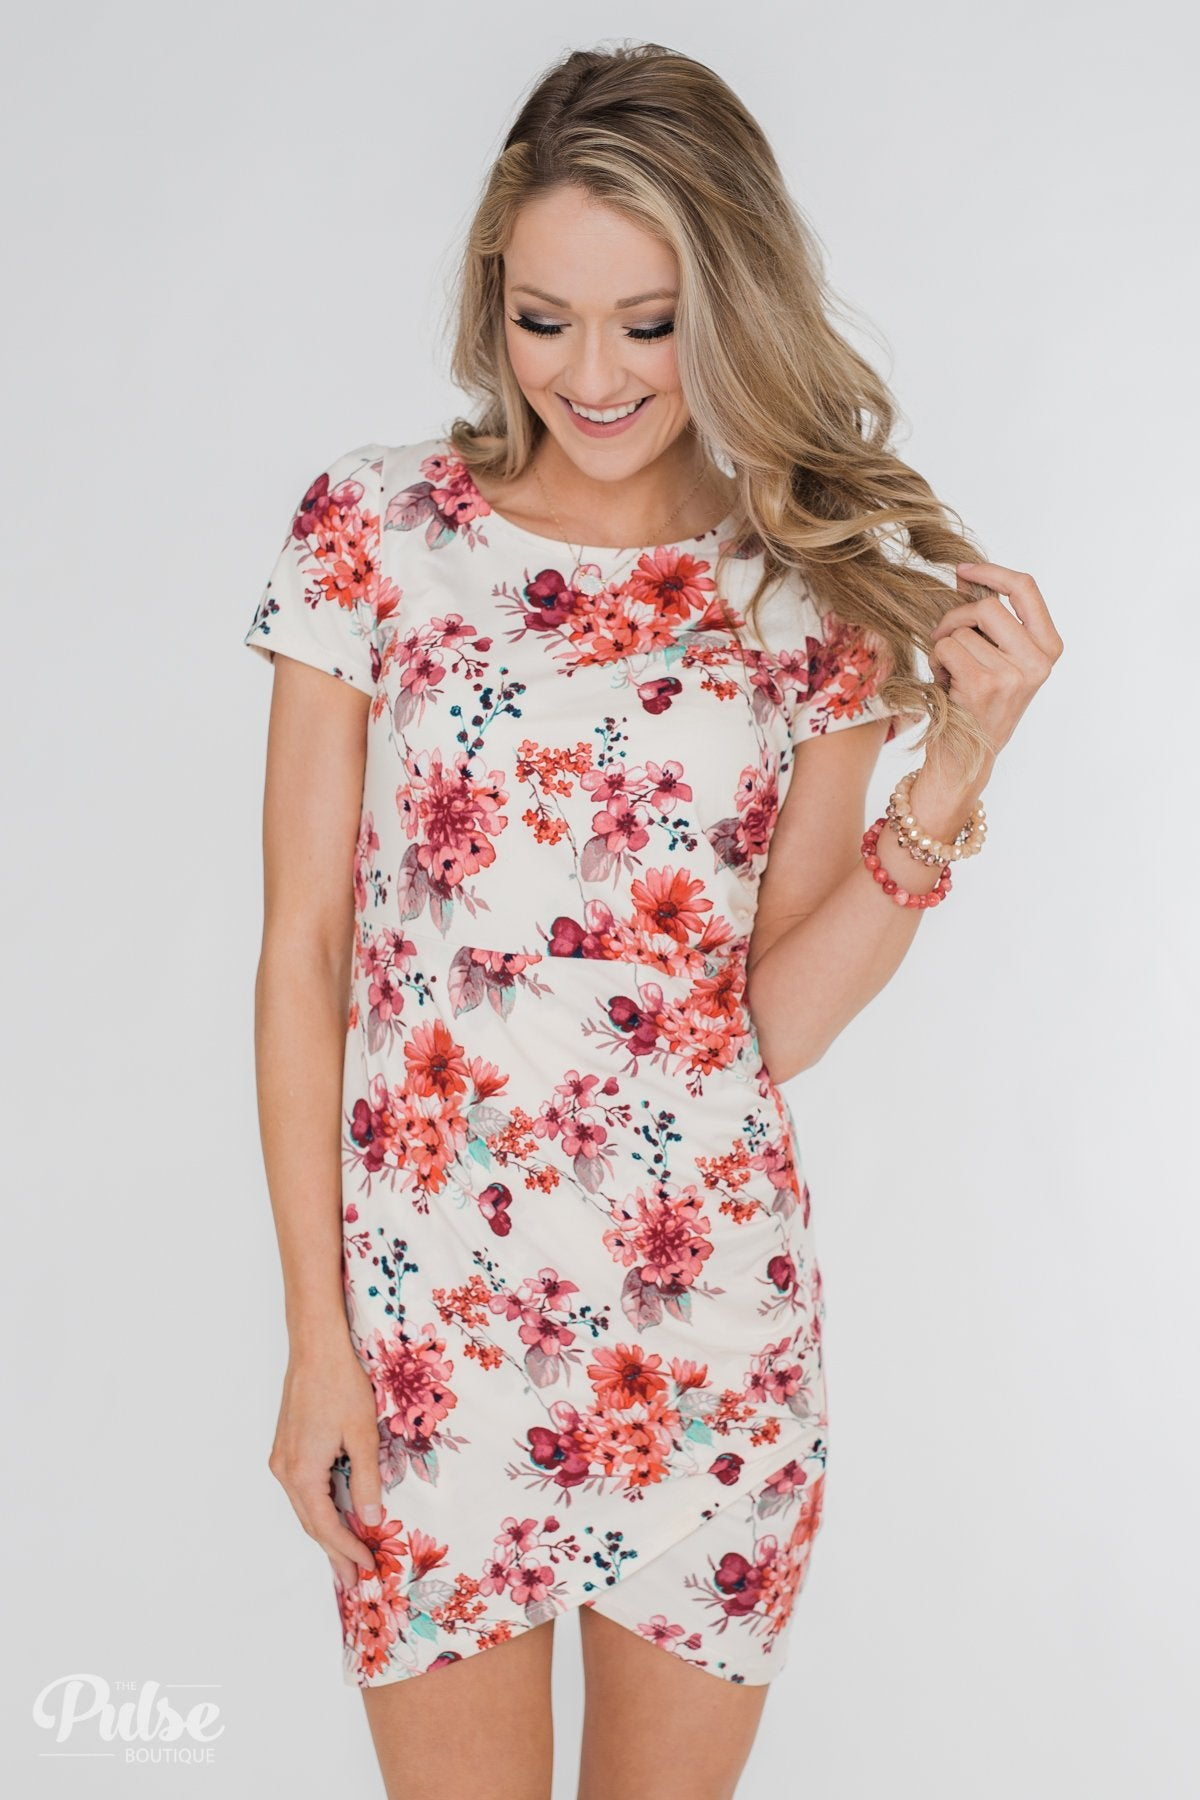 5828fc7c54 Make My Heart Sing Floral Wrap Dress- Cream – The Pulse Boutique